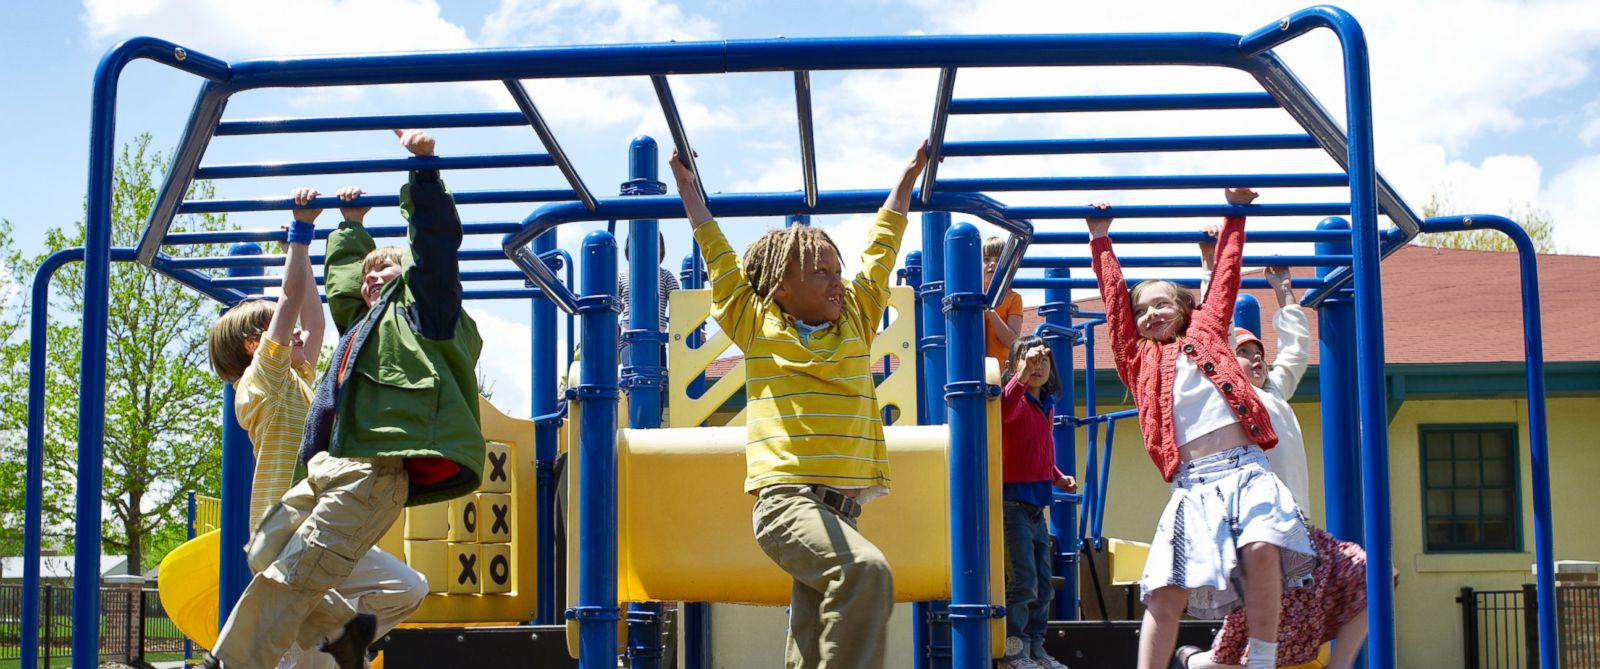 PHOTO: Study says playground related head injuries are on the rise.